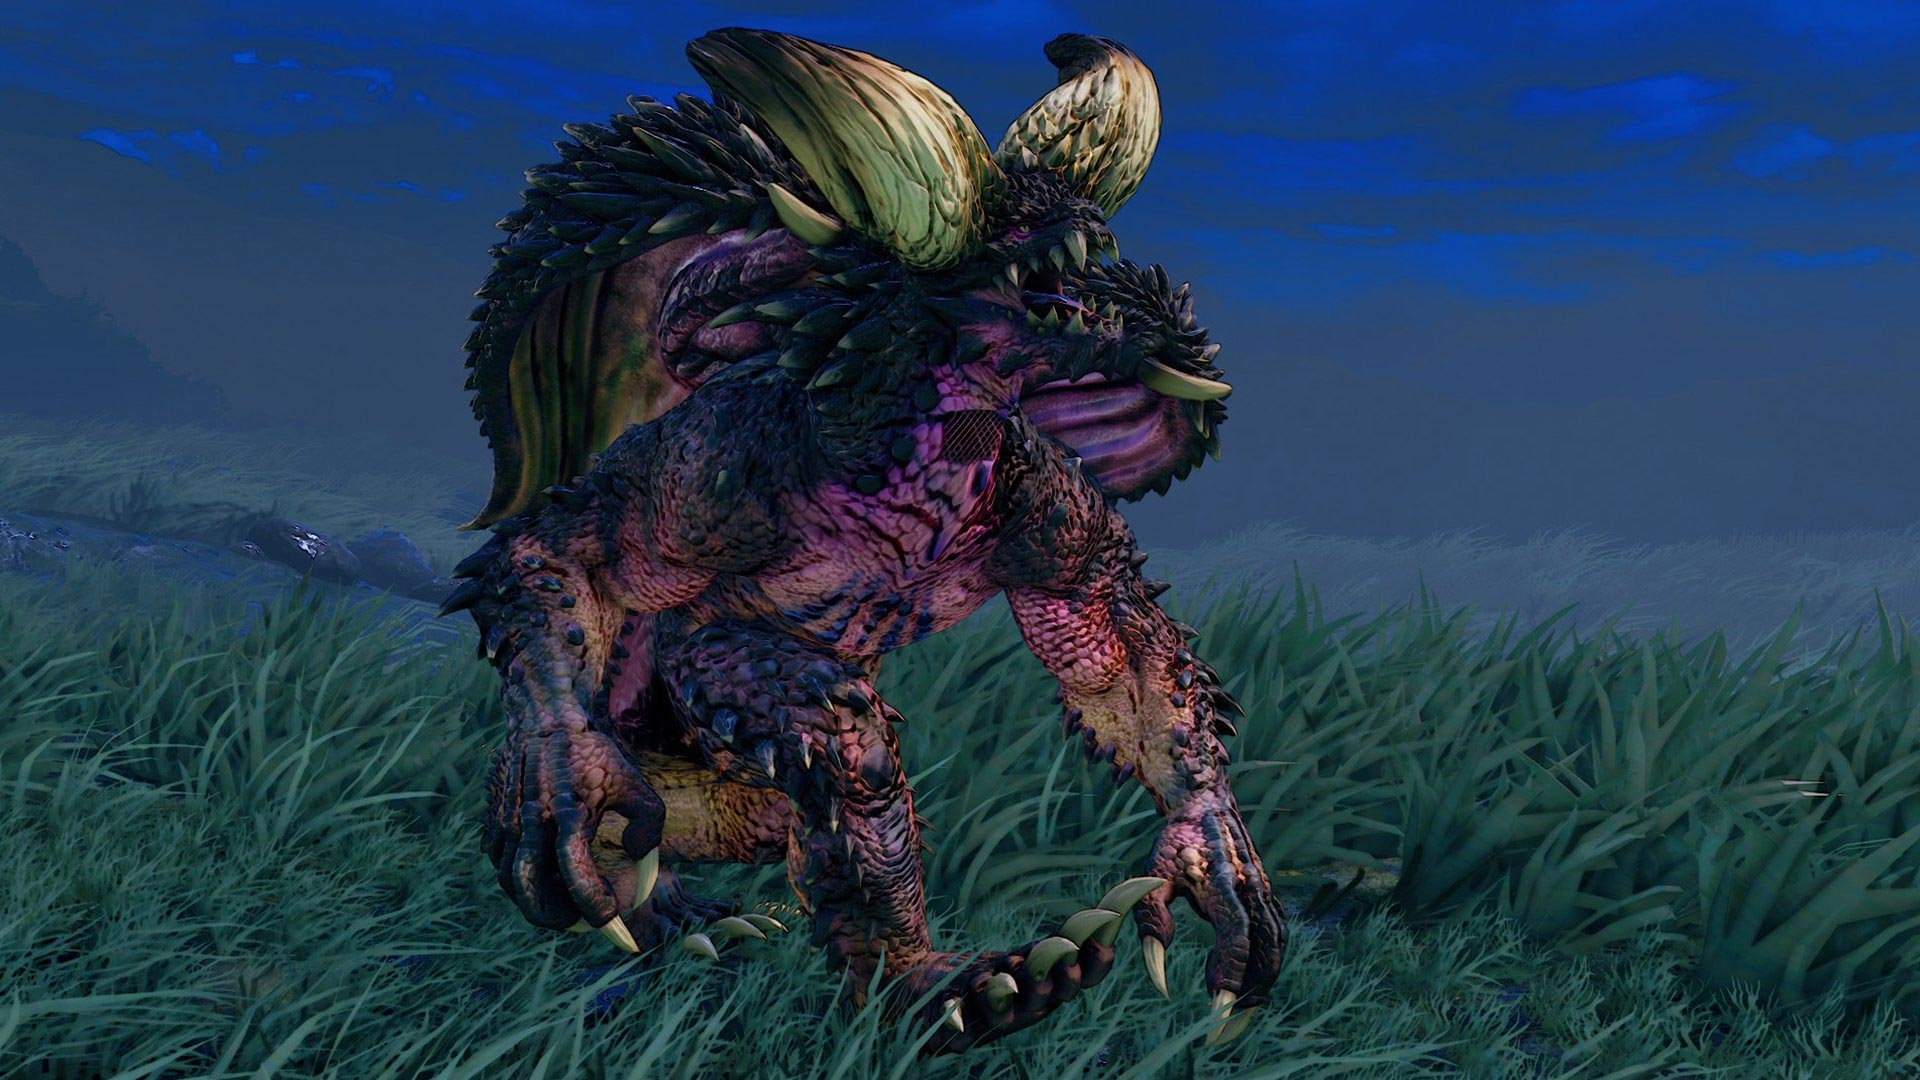 Extra Battle Monster Hunter Blanka costume 1 out of 1 image gallery